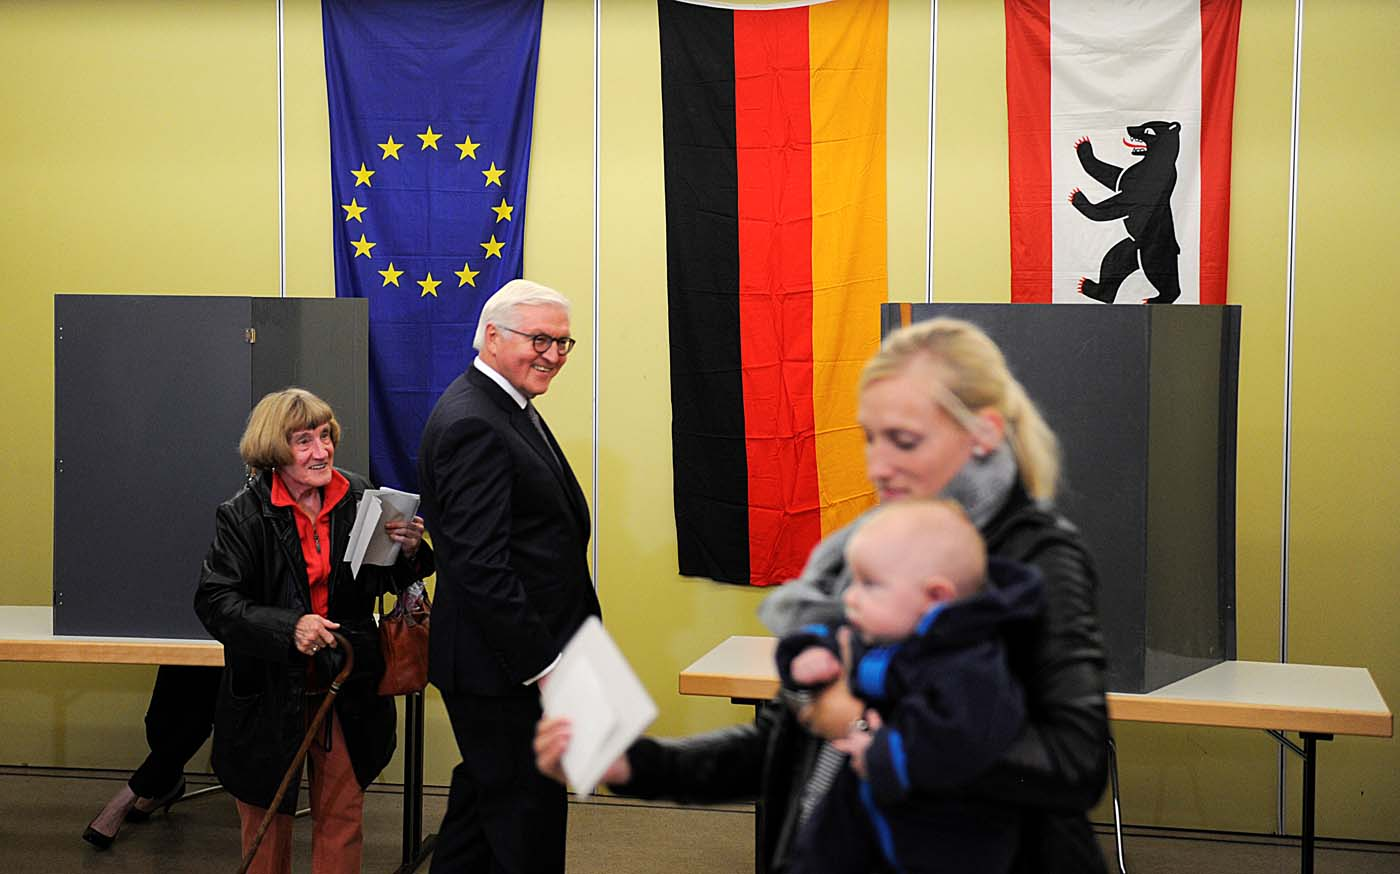 German President Frank-Walter Steinmeier casts his vote on election day in Berlin, Germany September 24, 2017. REUTERS/Stefanie Loos